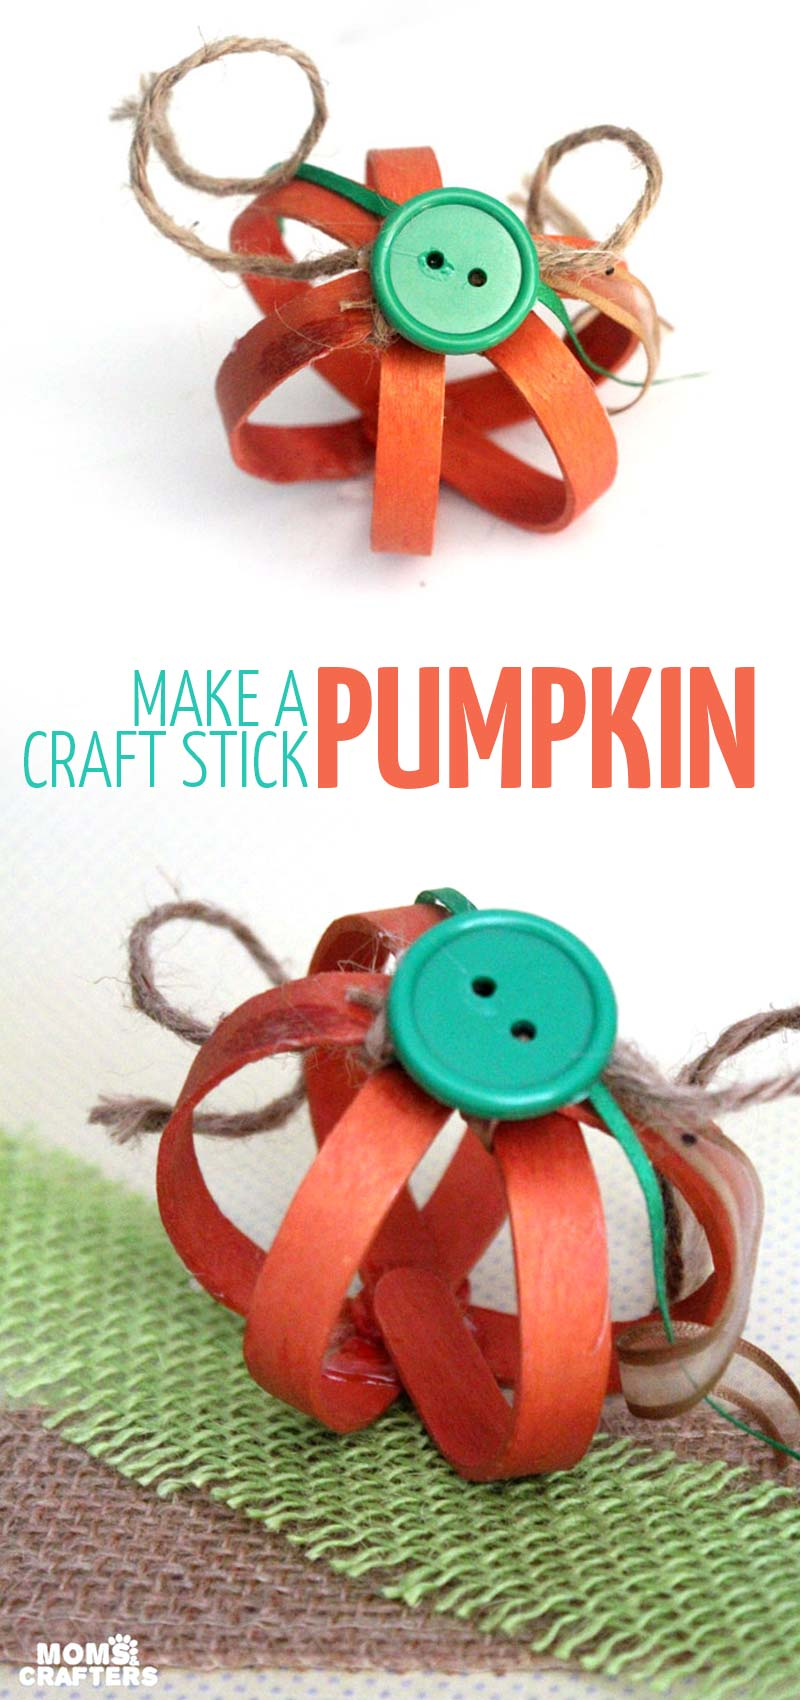 This bent craft stick pumpkin craft is so adorable - you'll want to make a lot for your Autumn or Halloween decor! It's an easy fall mantel decor idea and a simple DIY for teens, or grown ups.